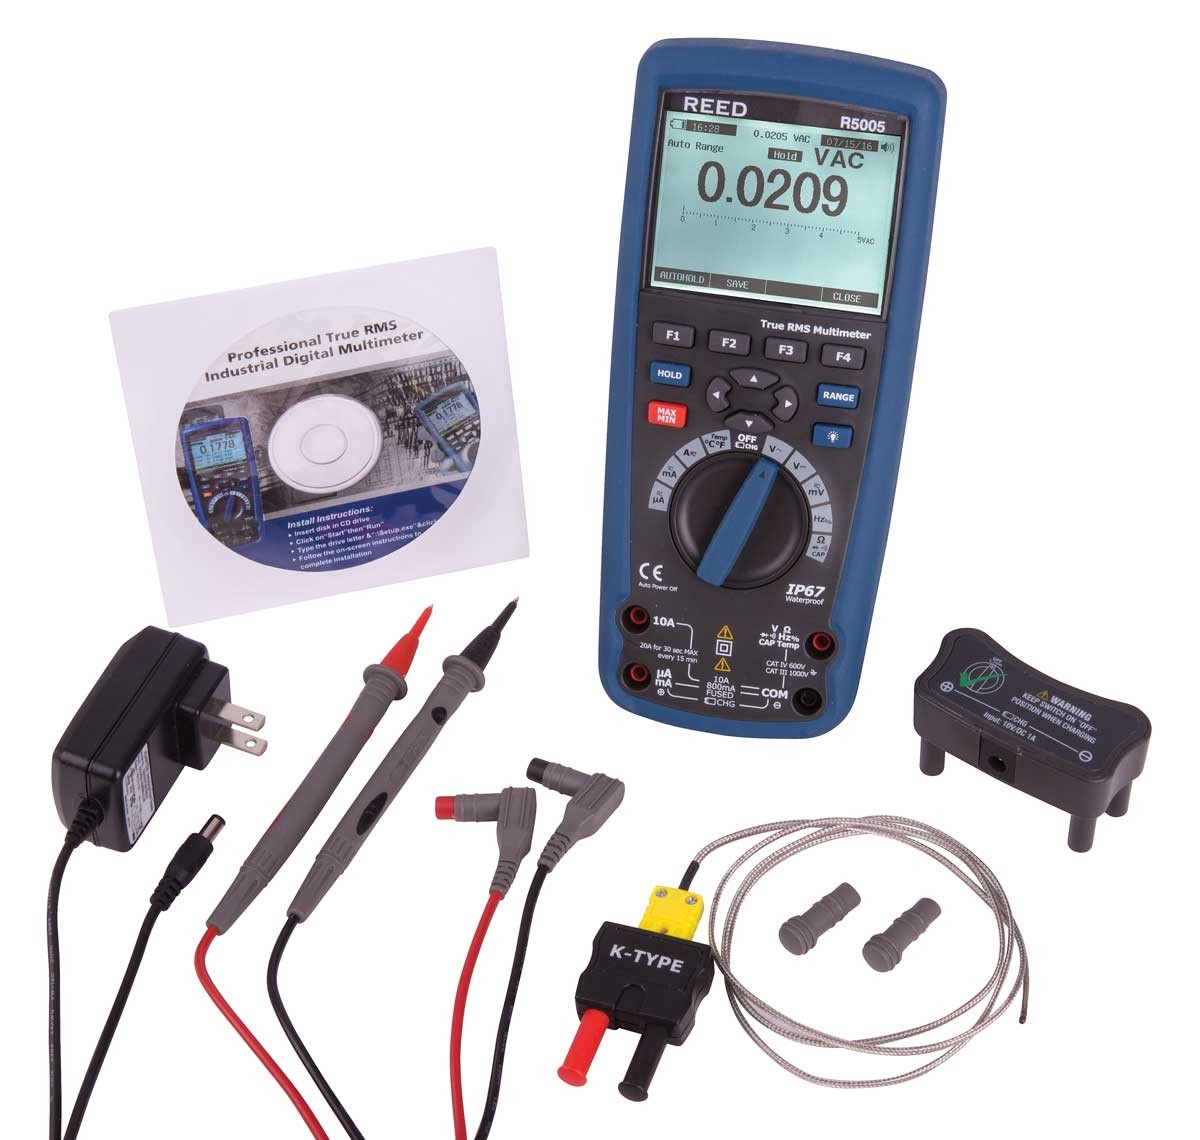 REED R5005 True RMS Industrial Multimeter with Bluetooth-Included